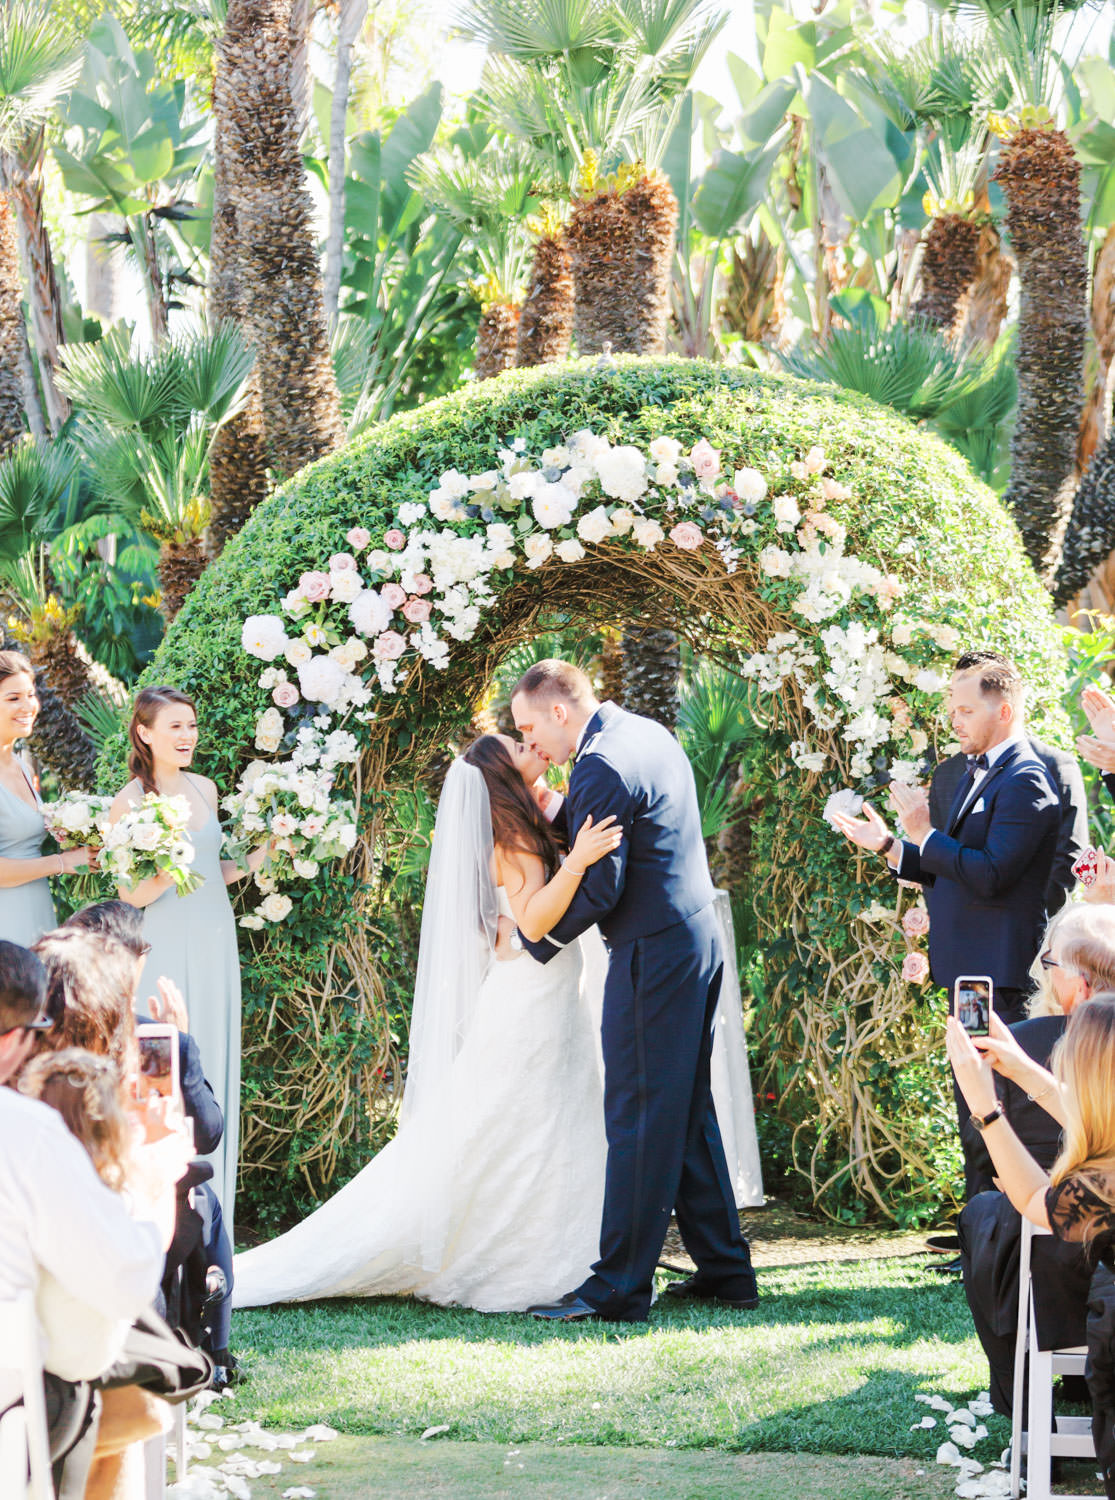 Wedding ceremony first kiss captured on film in a garden setting with palm trees and a floral arch with blush and ivory flowers. Wedding at Humphreys Half Moon Inn by Cavin Elizabeth Photography